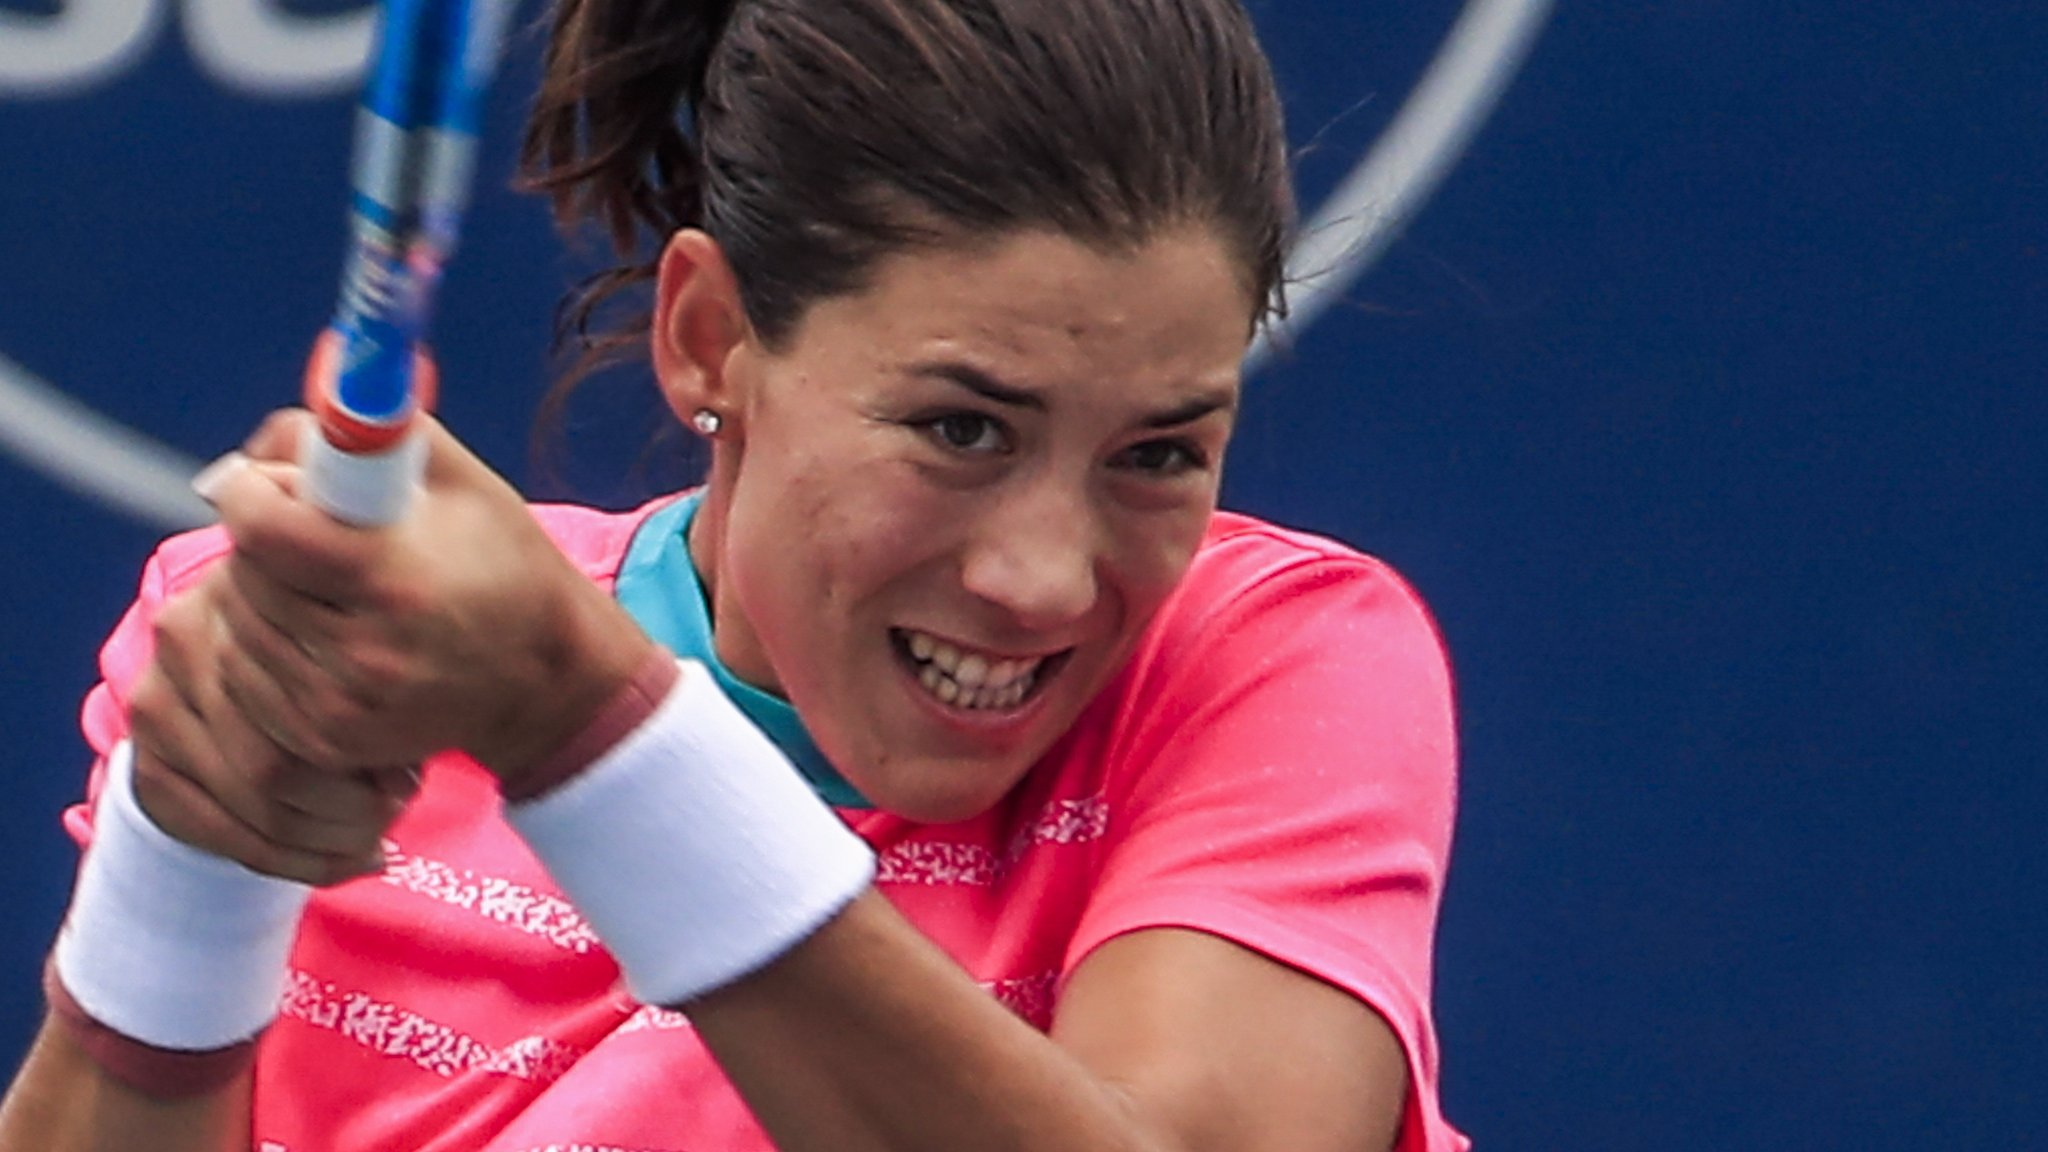 Garbine Muguruza: Spanish defending champion beaten by Lesia Tsurenko in Cincinnati